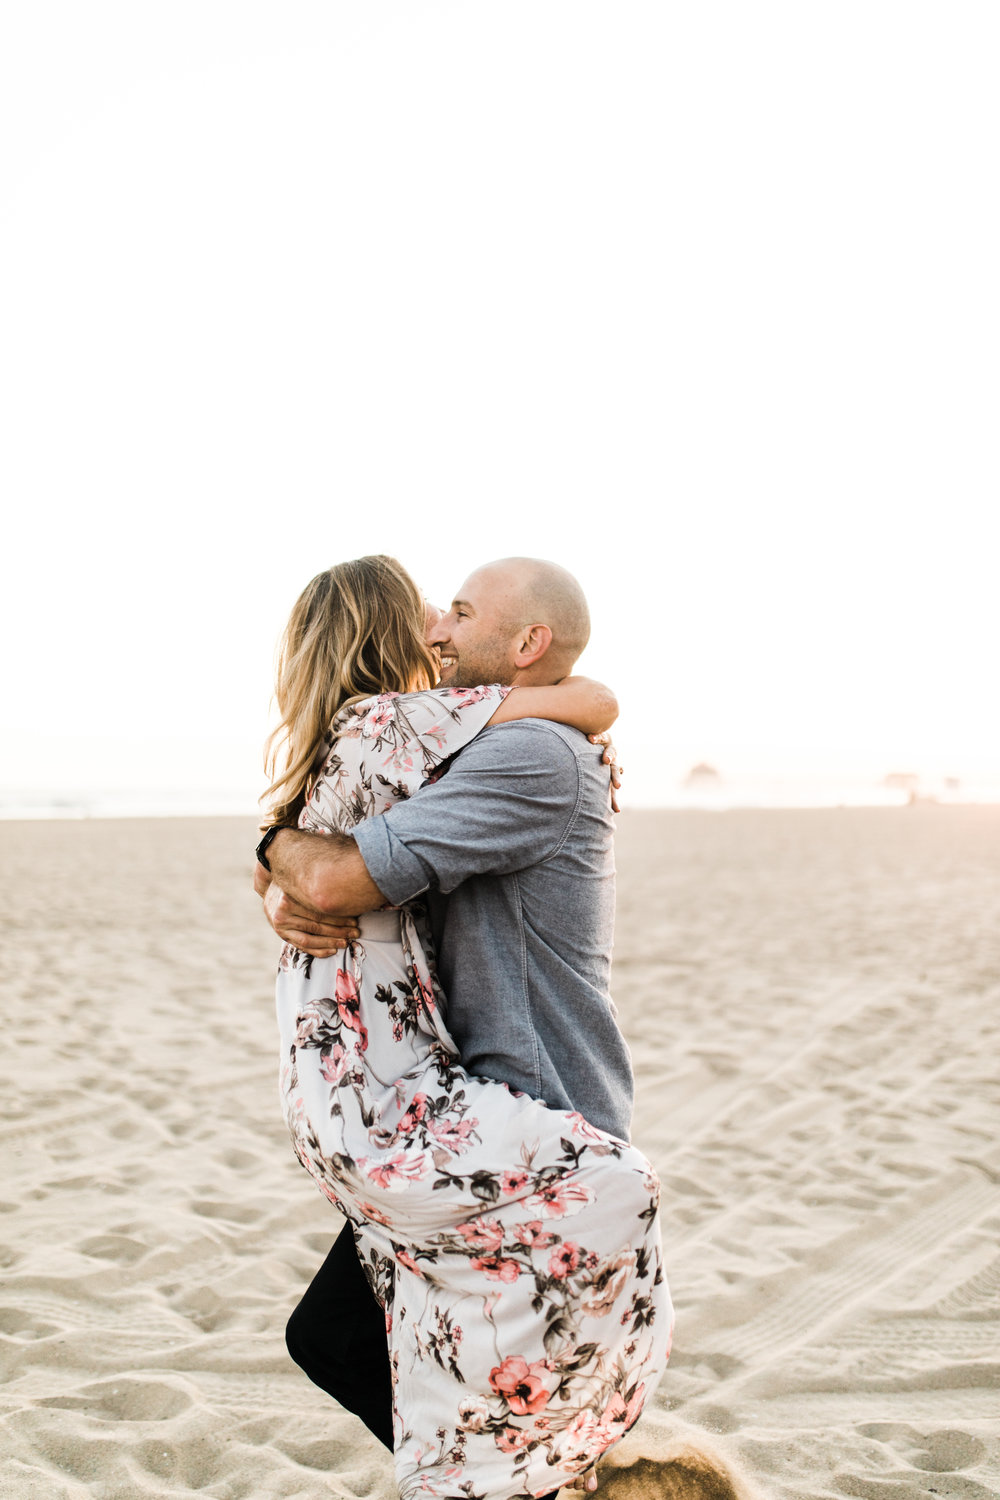 Koleta&Greg-Pacific-City-Huntington-Beach-Engagement-Photos-Clarisse-Rae-Southern-California-Wedding-Photographer_55